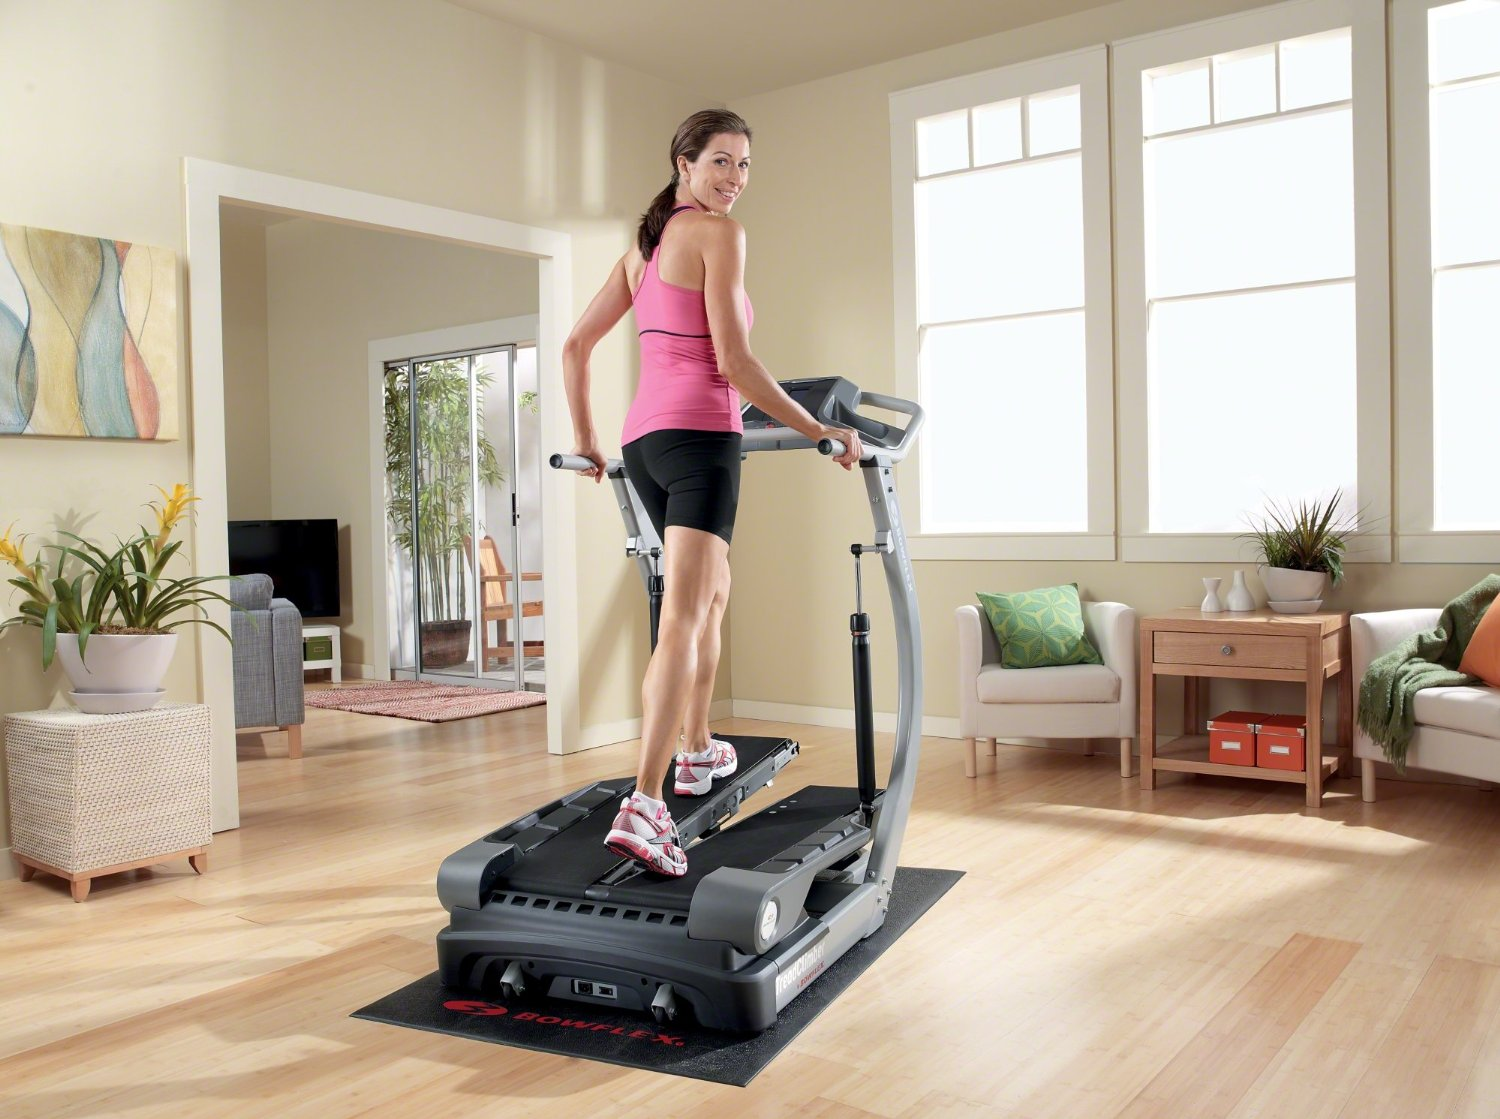 Top 5 Bowflex Treadclimber Reviews The Best Of 2019